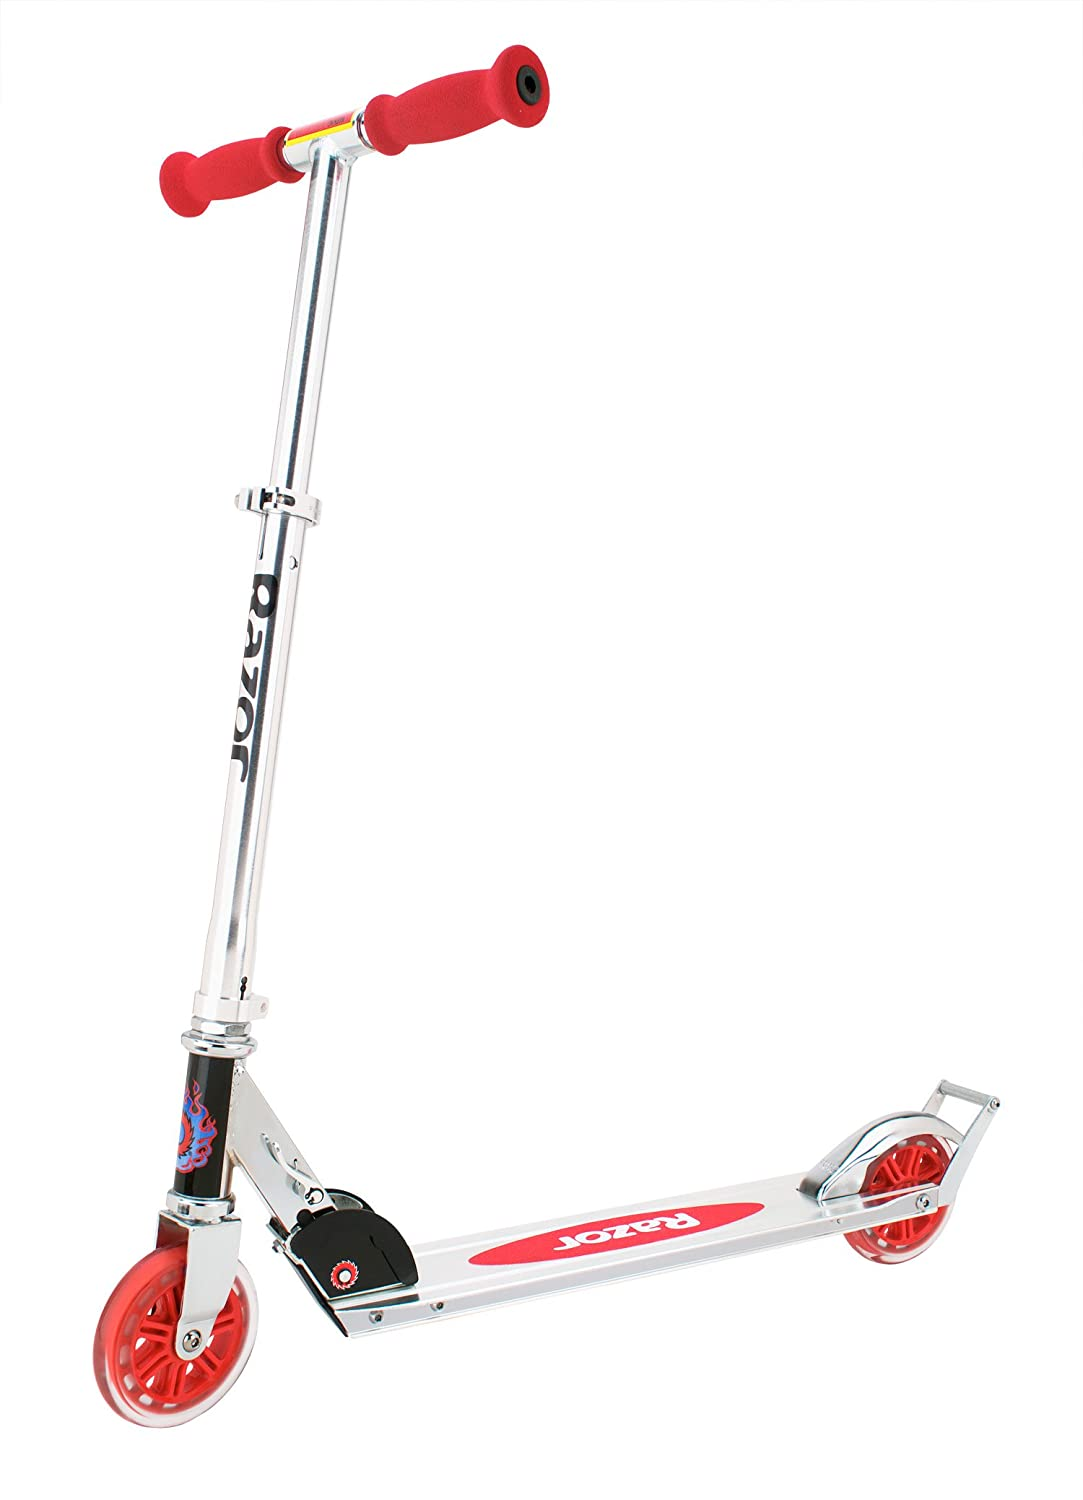 Razor AW125 Scooter, Red